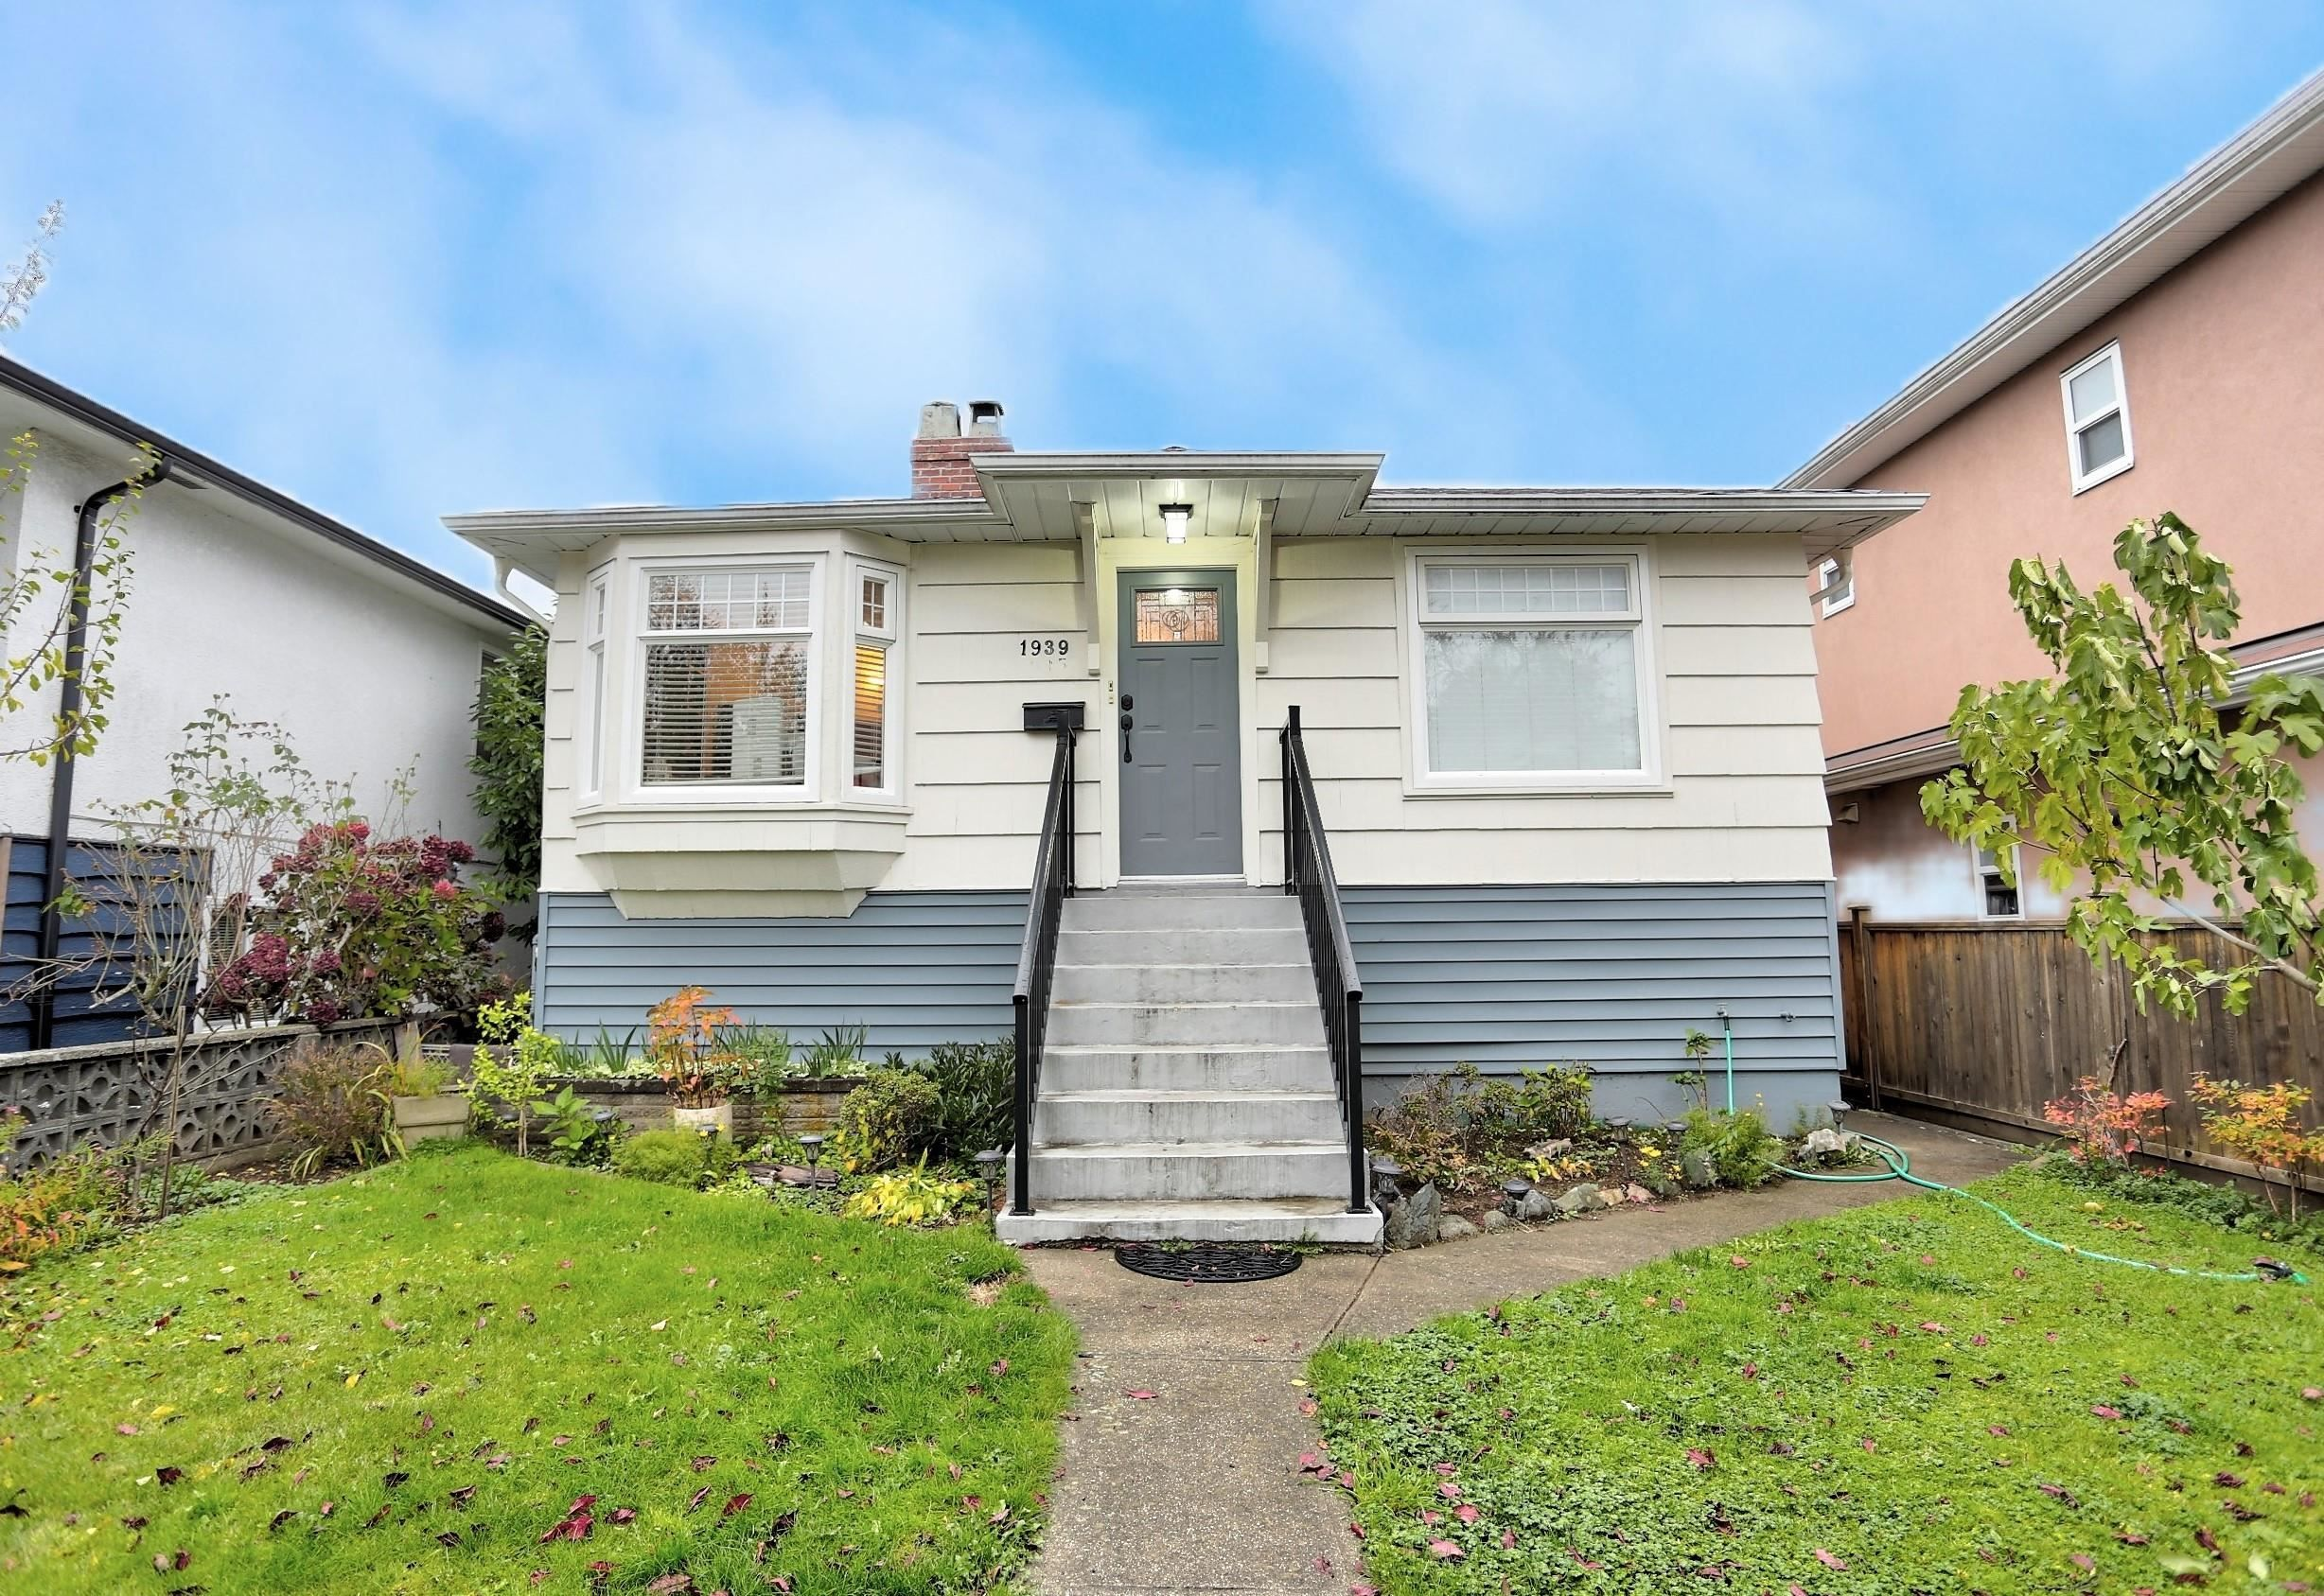 Main Photo: 1939 E 39TH Avenue in Vancouver: Victoria VE House for sale (Vancouver East)  : MLS®# R2625525